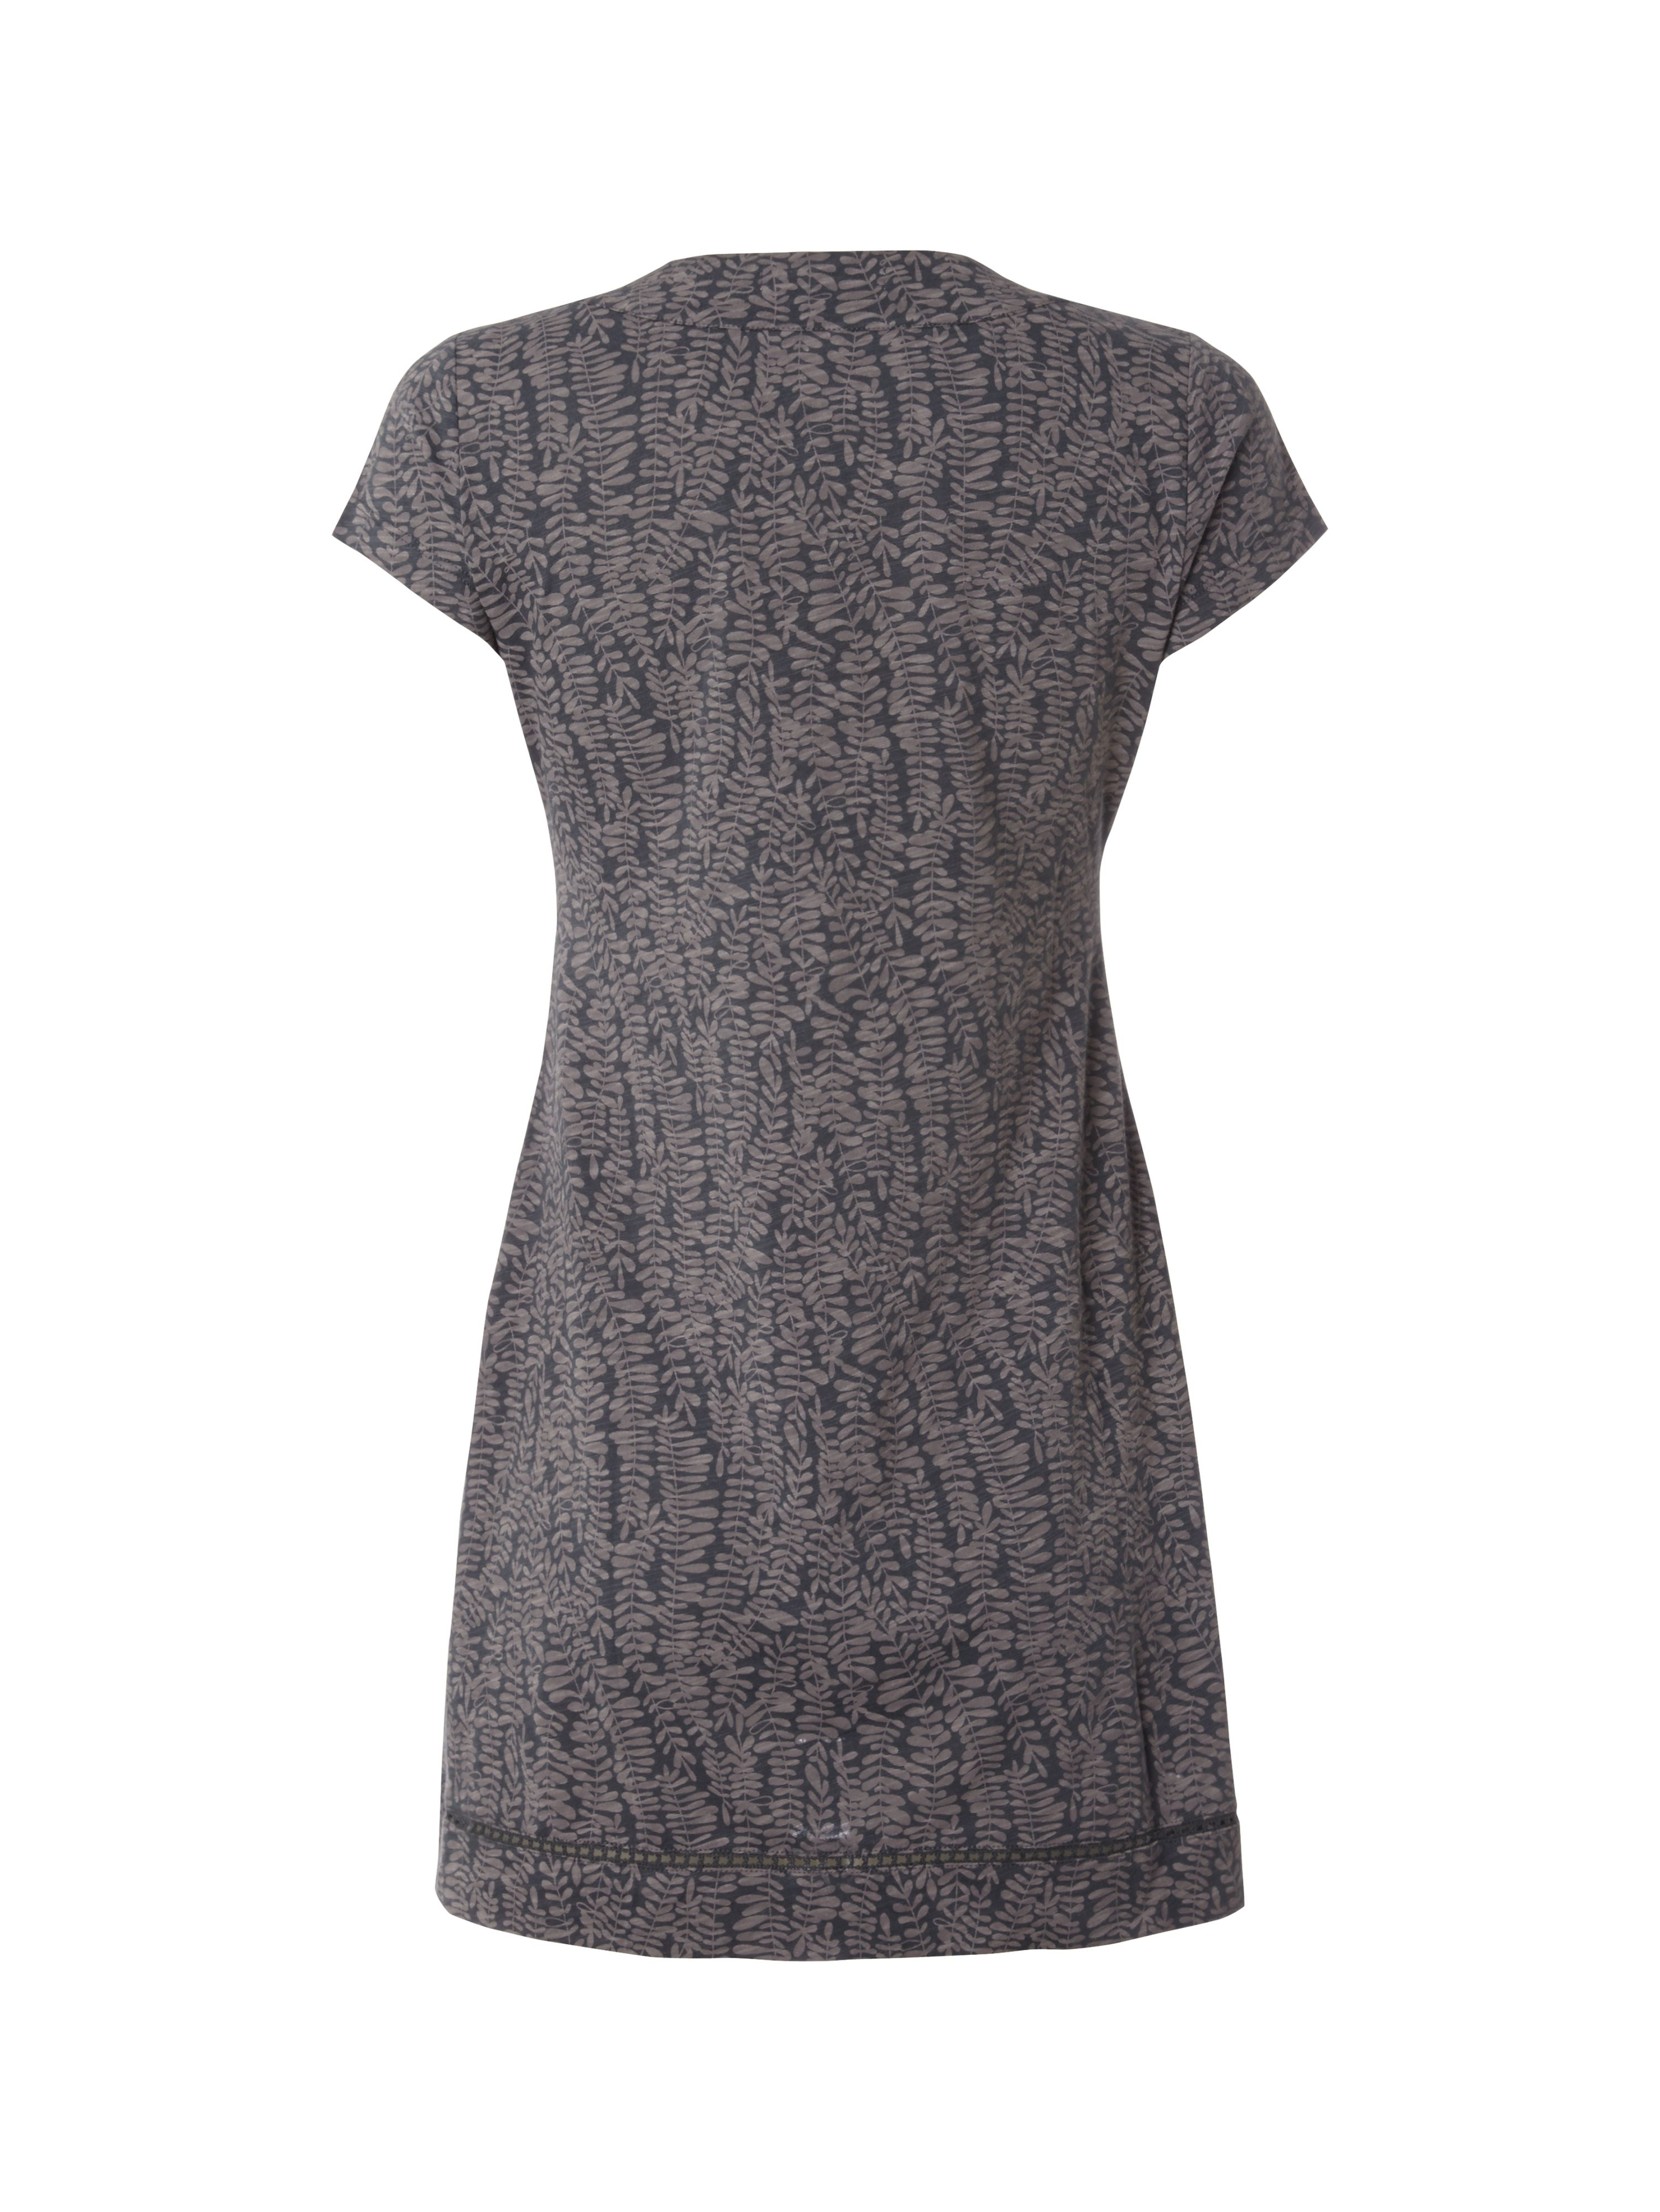 Pebble shore tunic